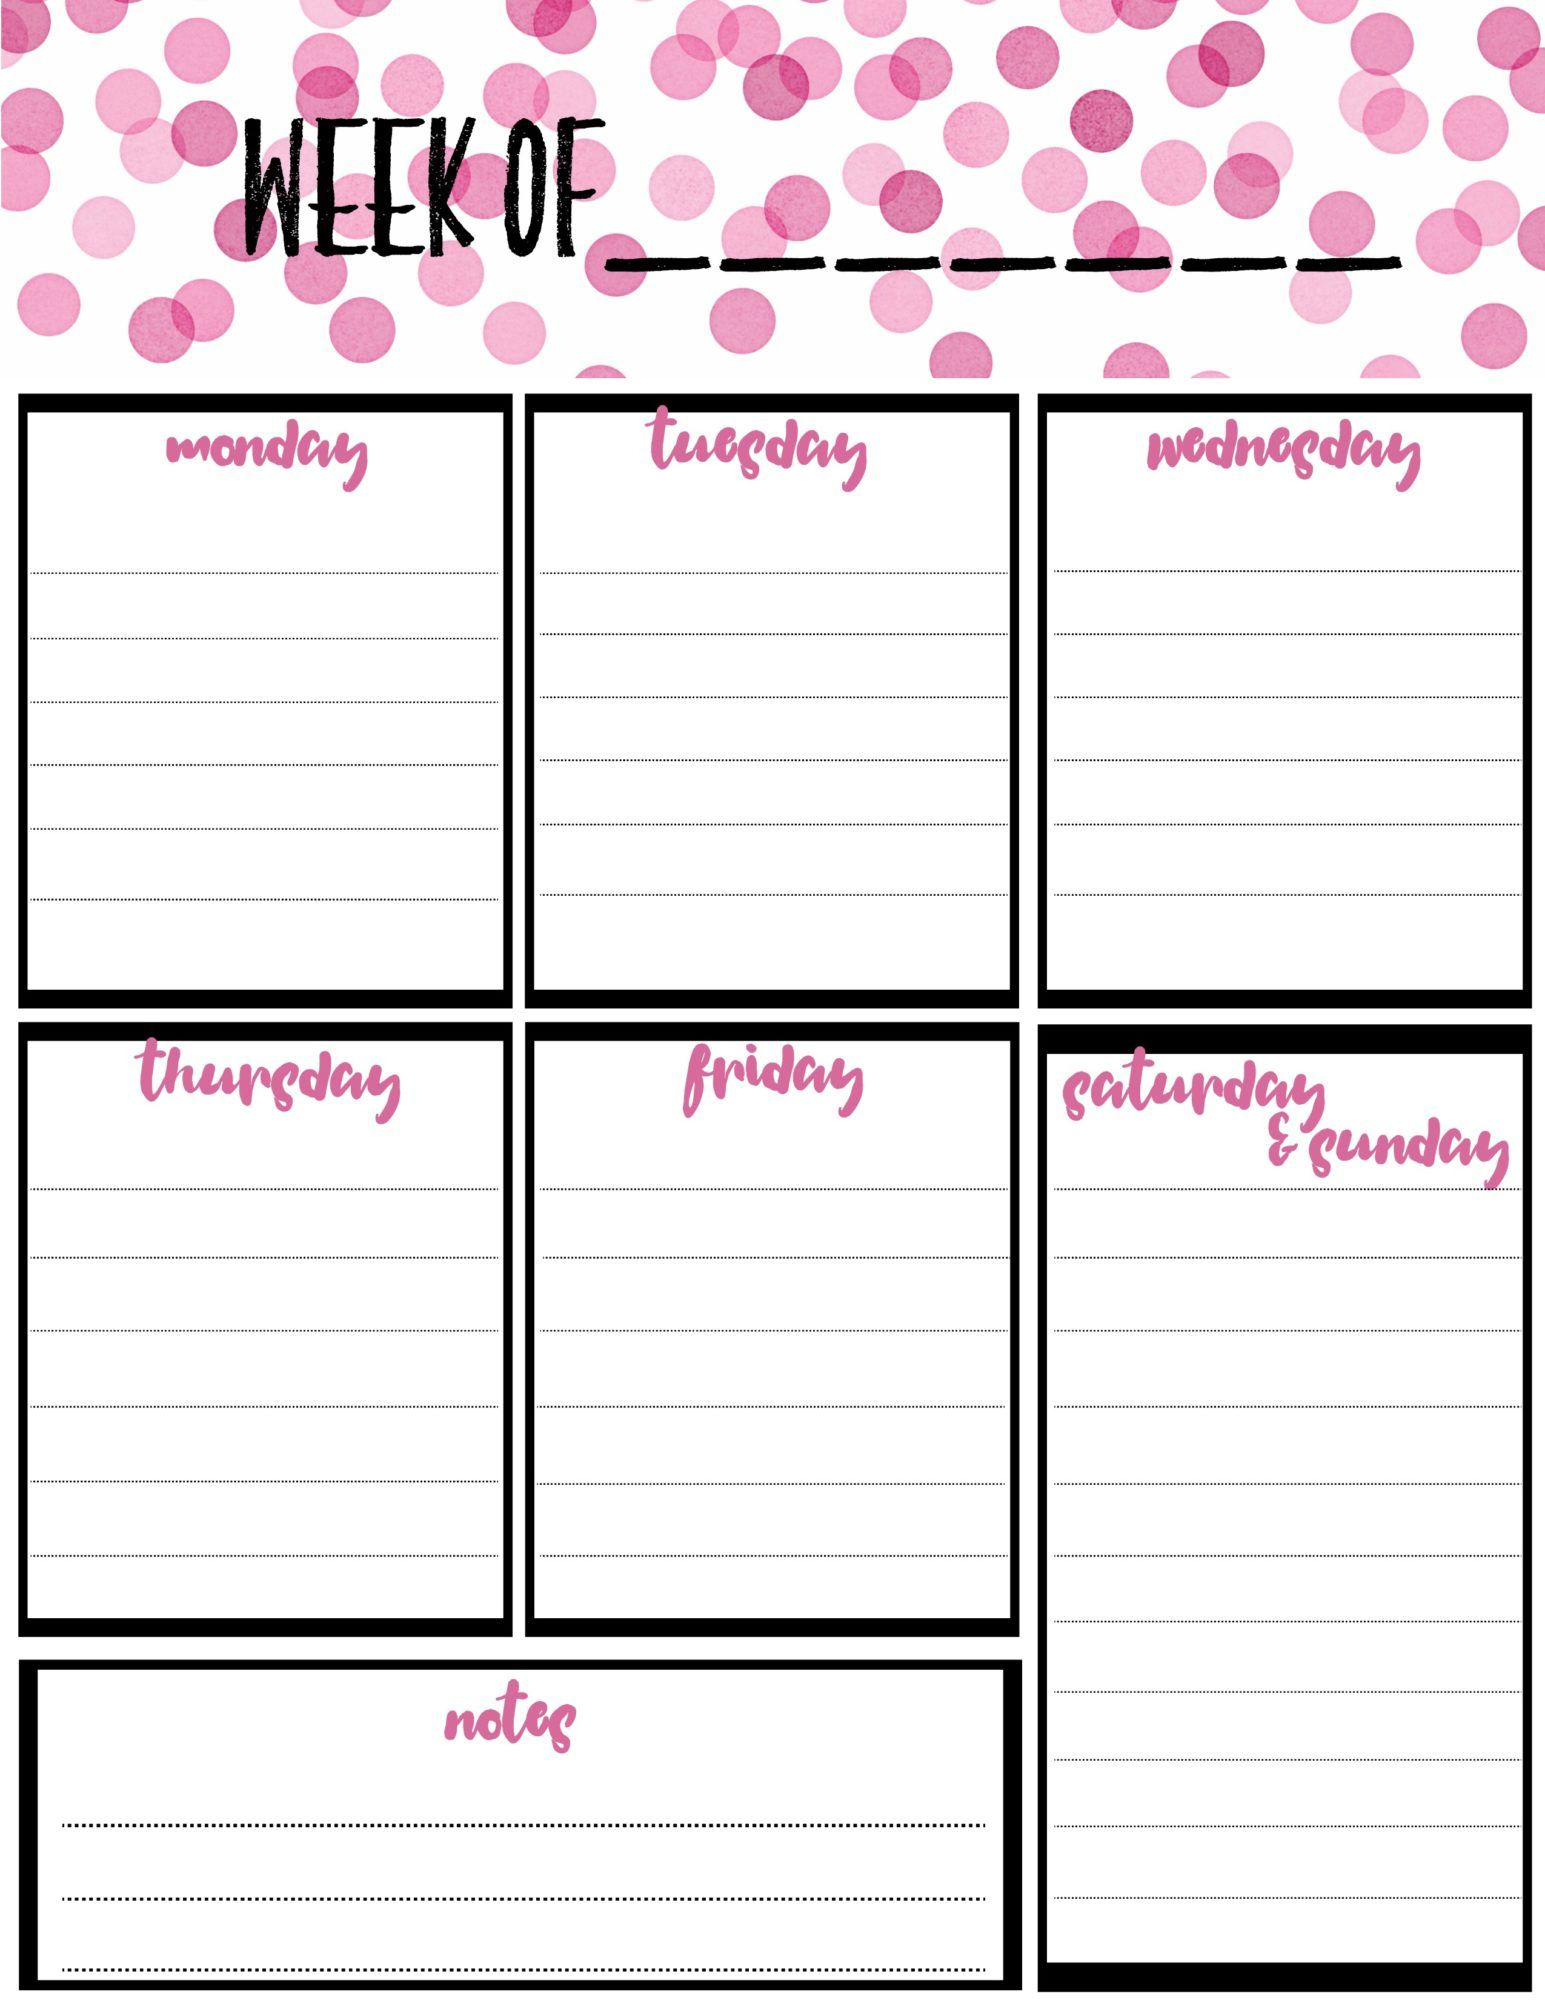 Printable Weekly Calendar - Free Download Printable